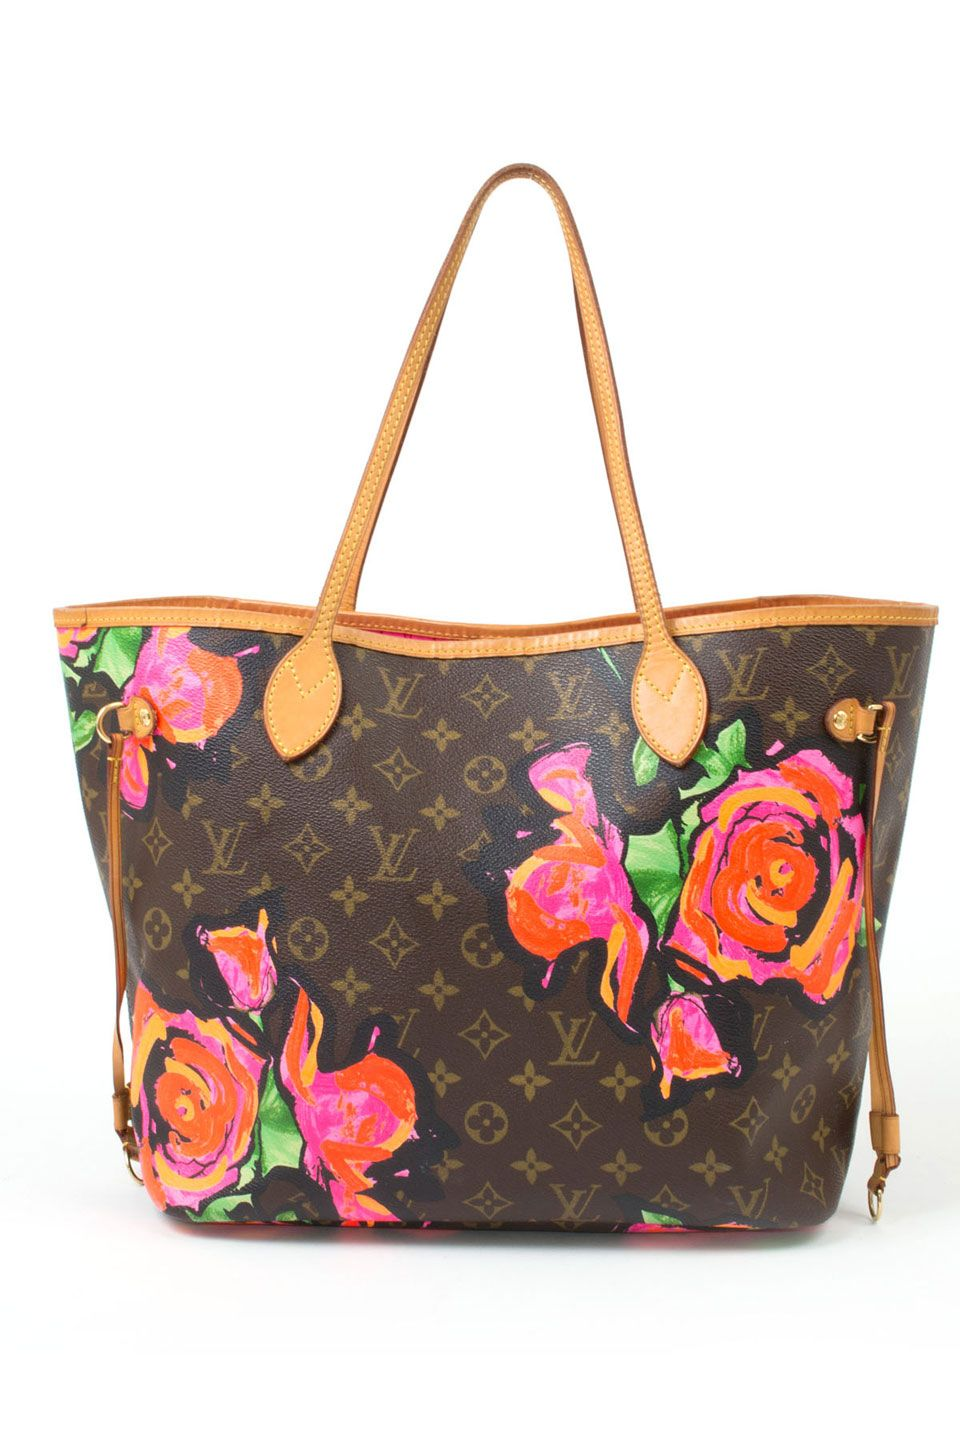 41675569d389a Vintage LV: Neverfull Roses Stephen Sprouse Gm In Monogram. My purse ...